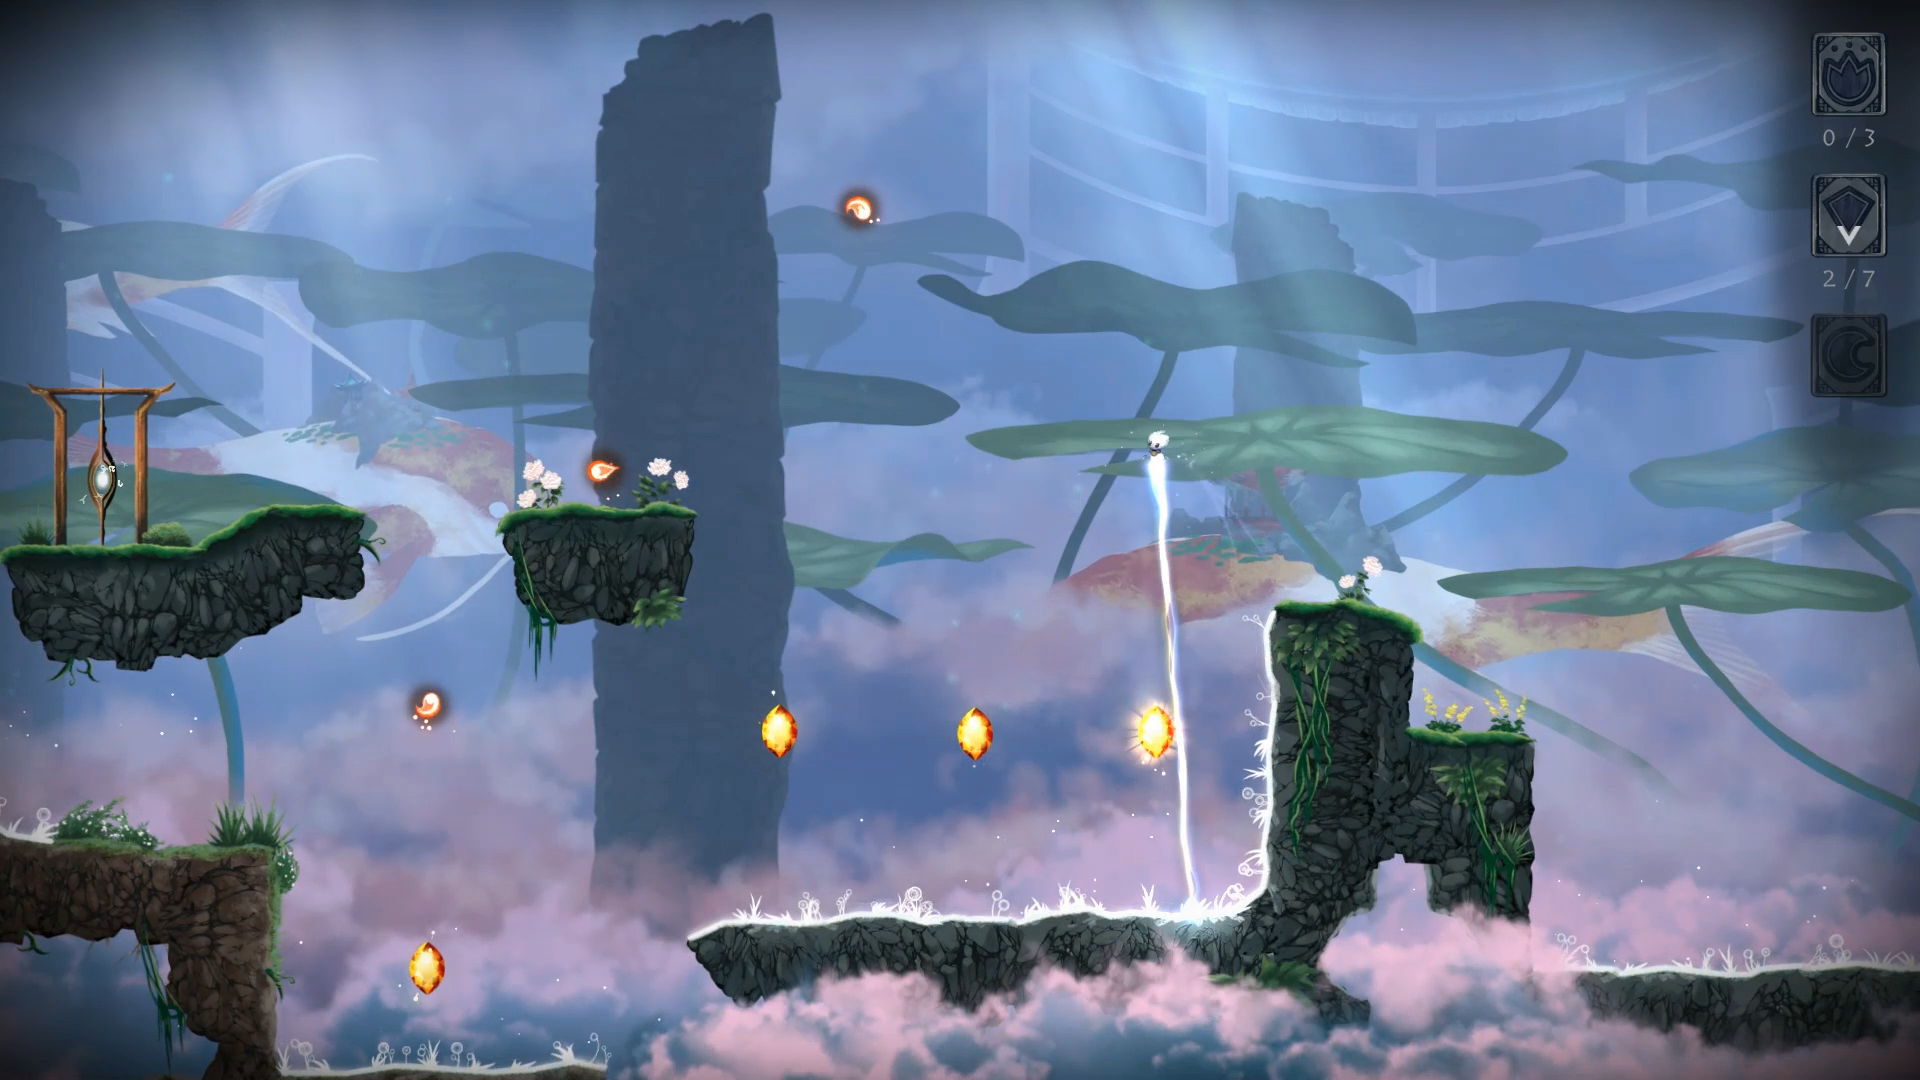 Mythical 2D Puzzle-Platformer Evergate announced!